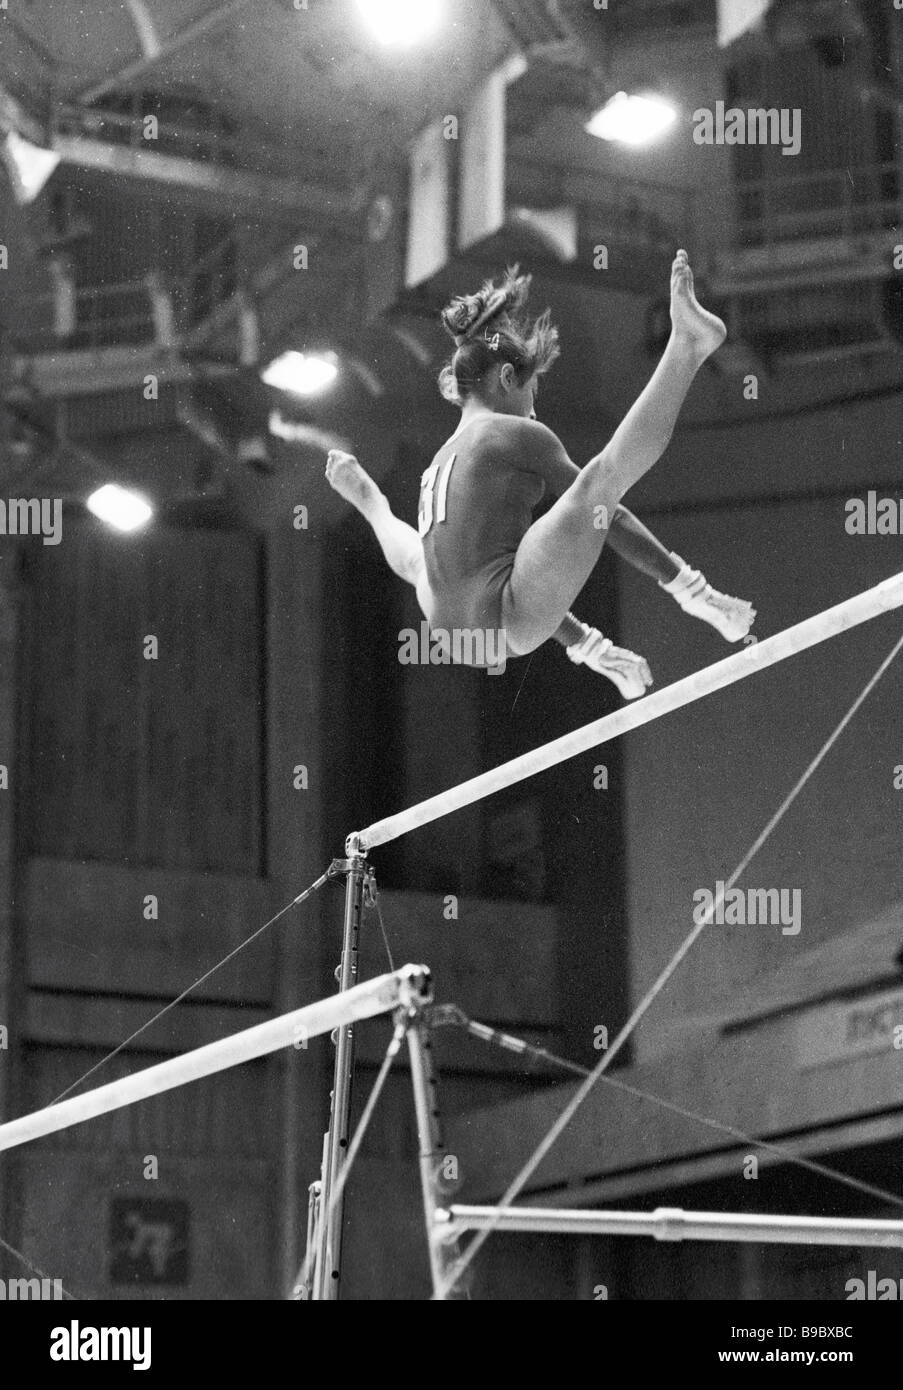 European and World 1985 all around champion Elena Shushunova in a top difficulty P bars exercises - Stock Image